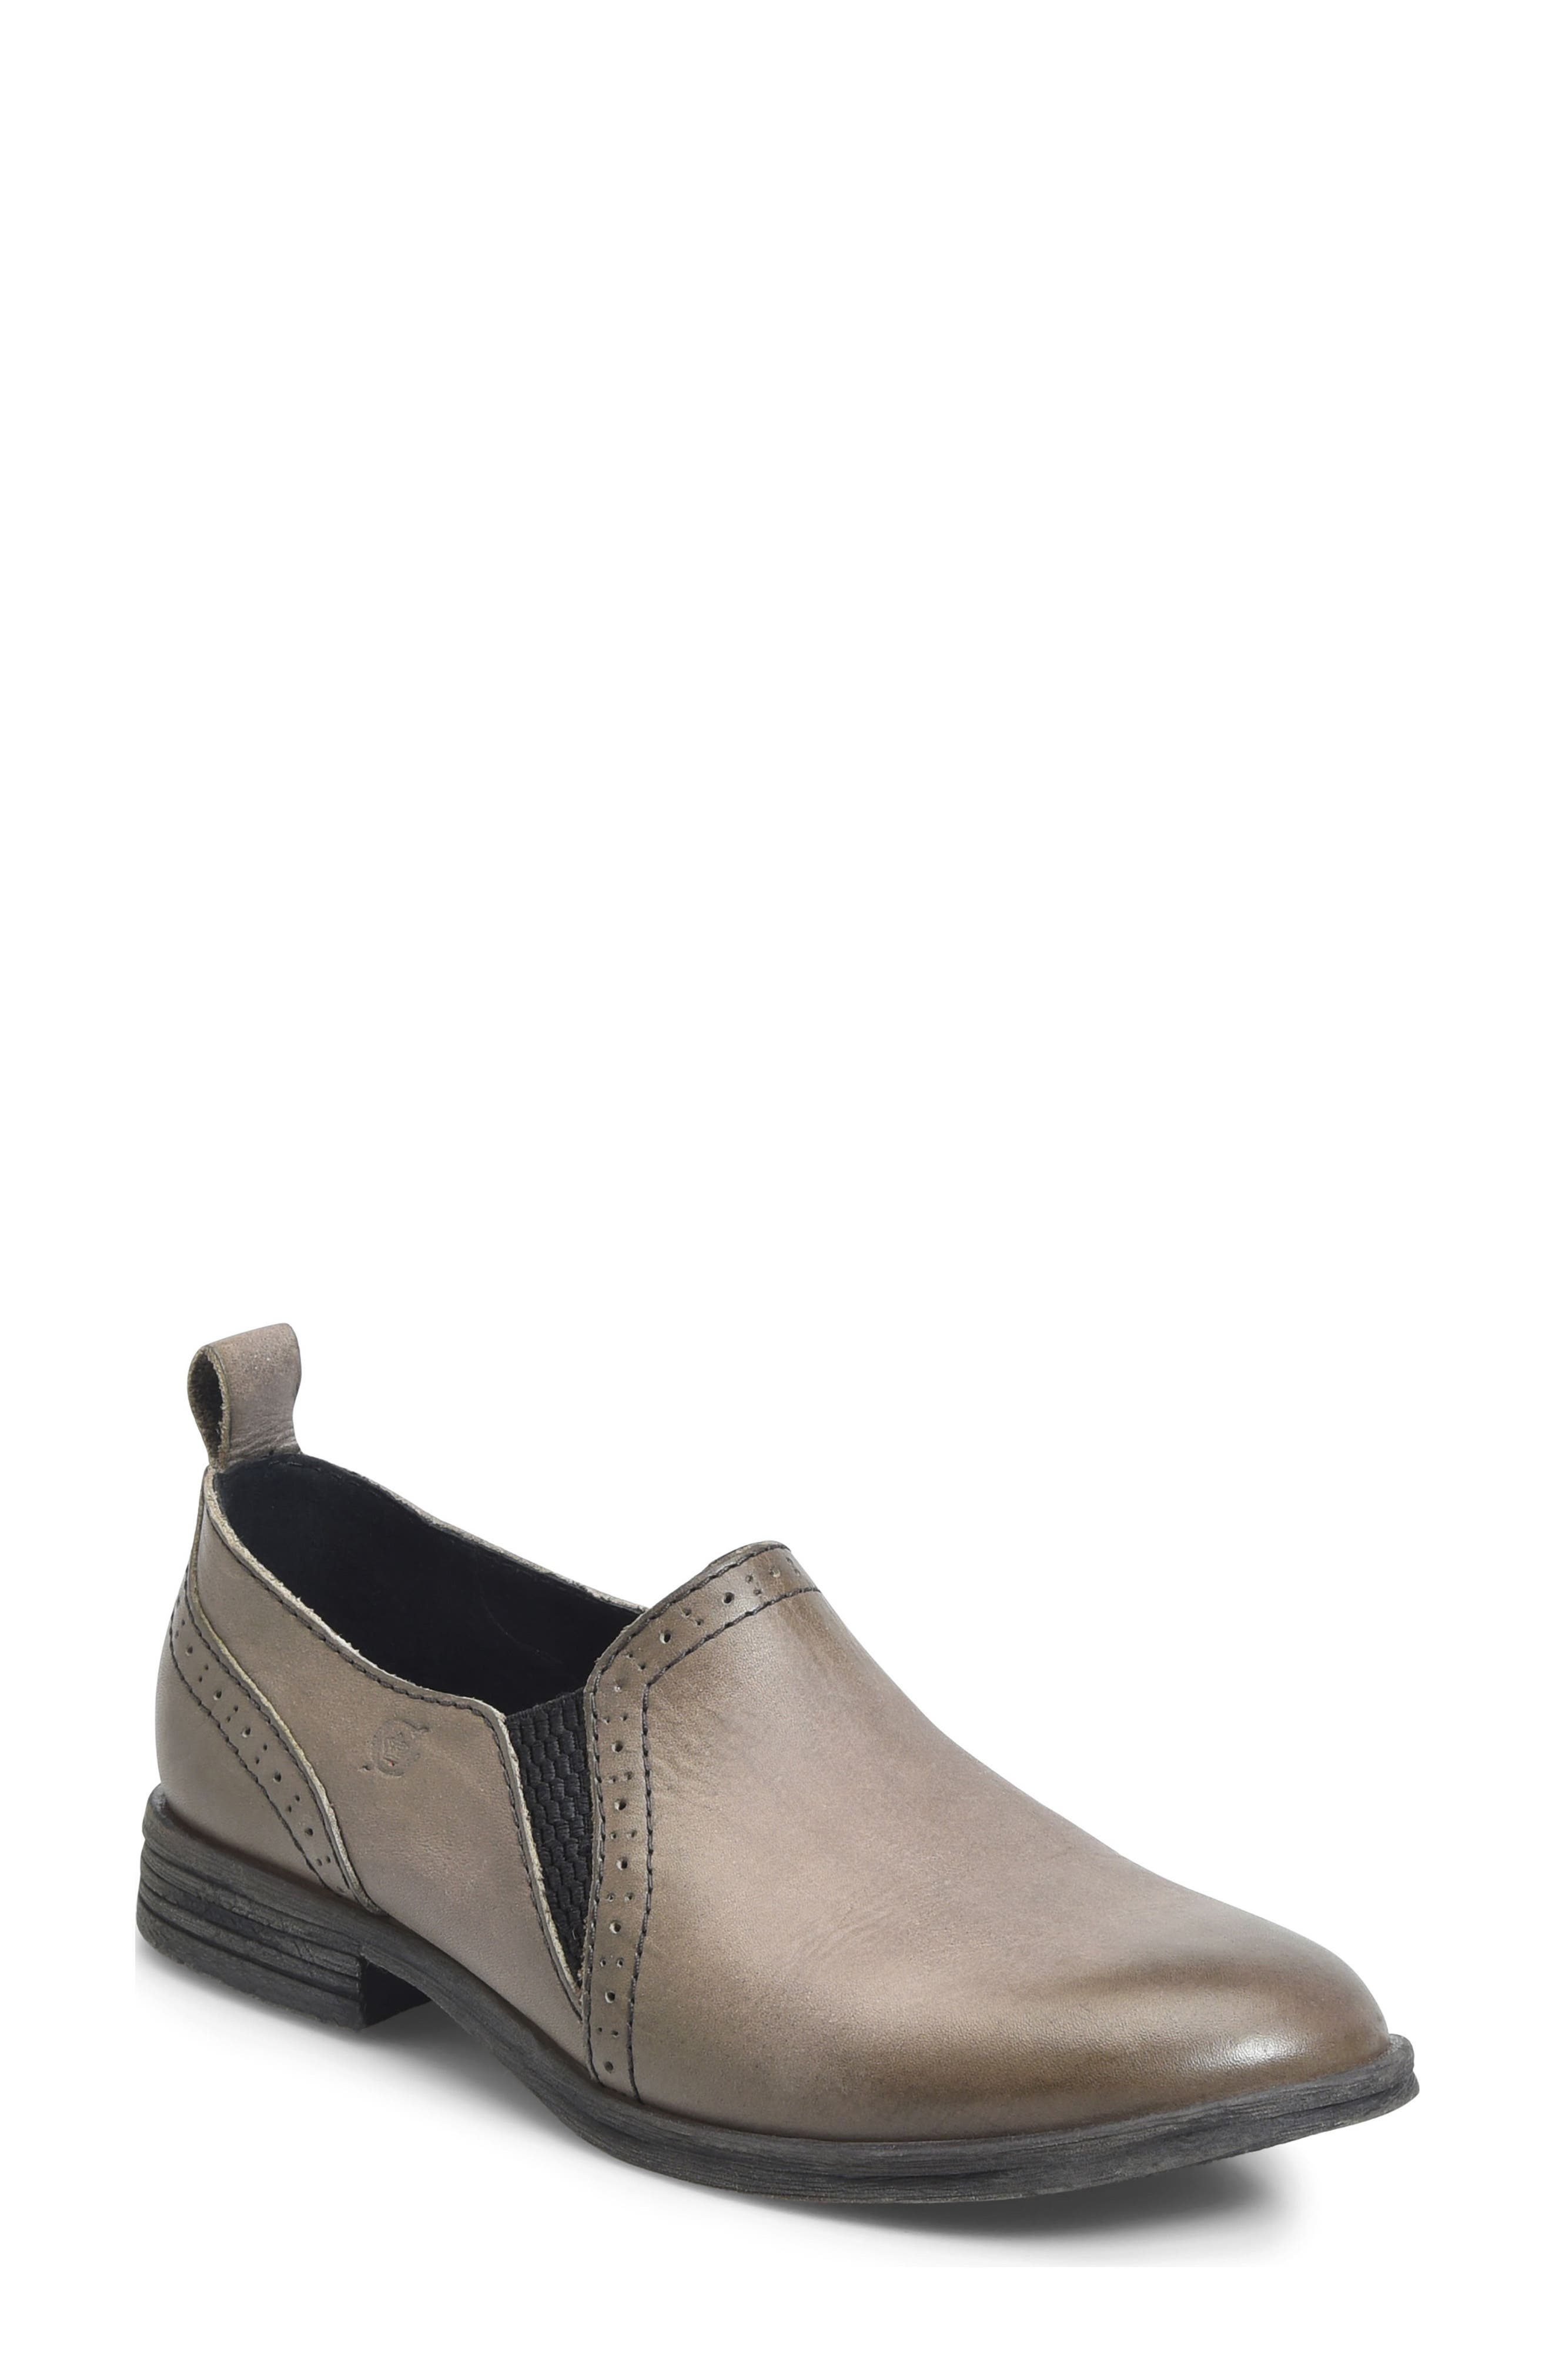 Alternate Image 1 Selected - Børn Fable Slip-On (Women)